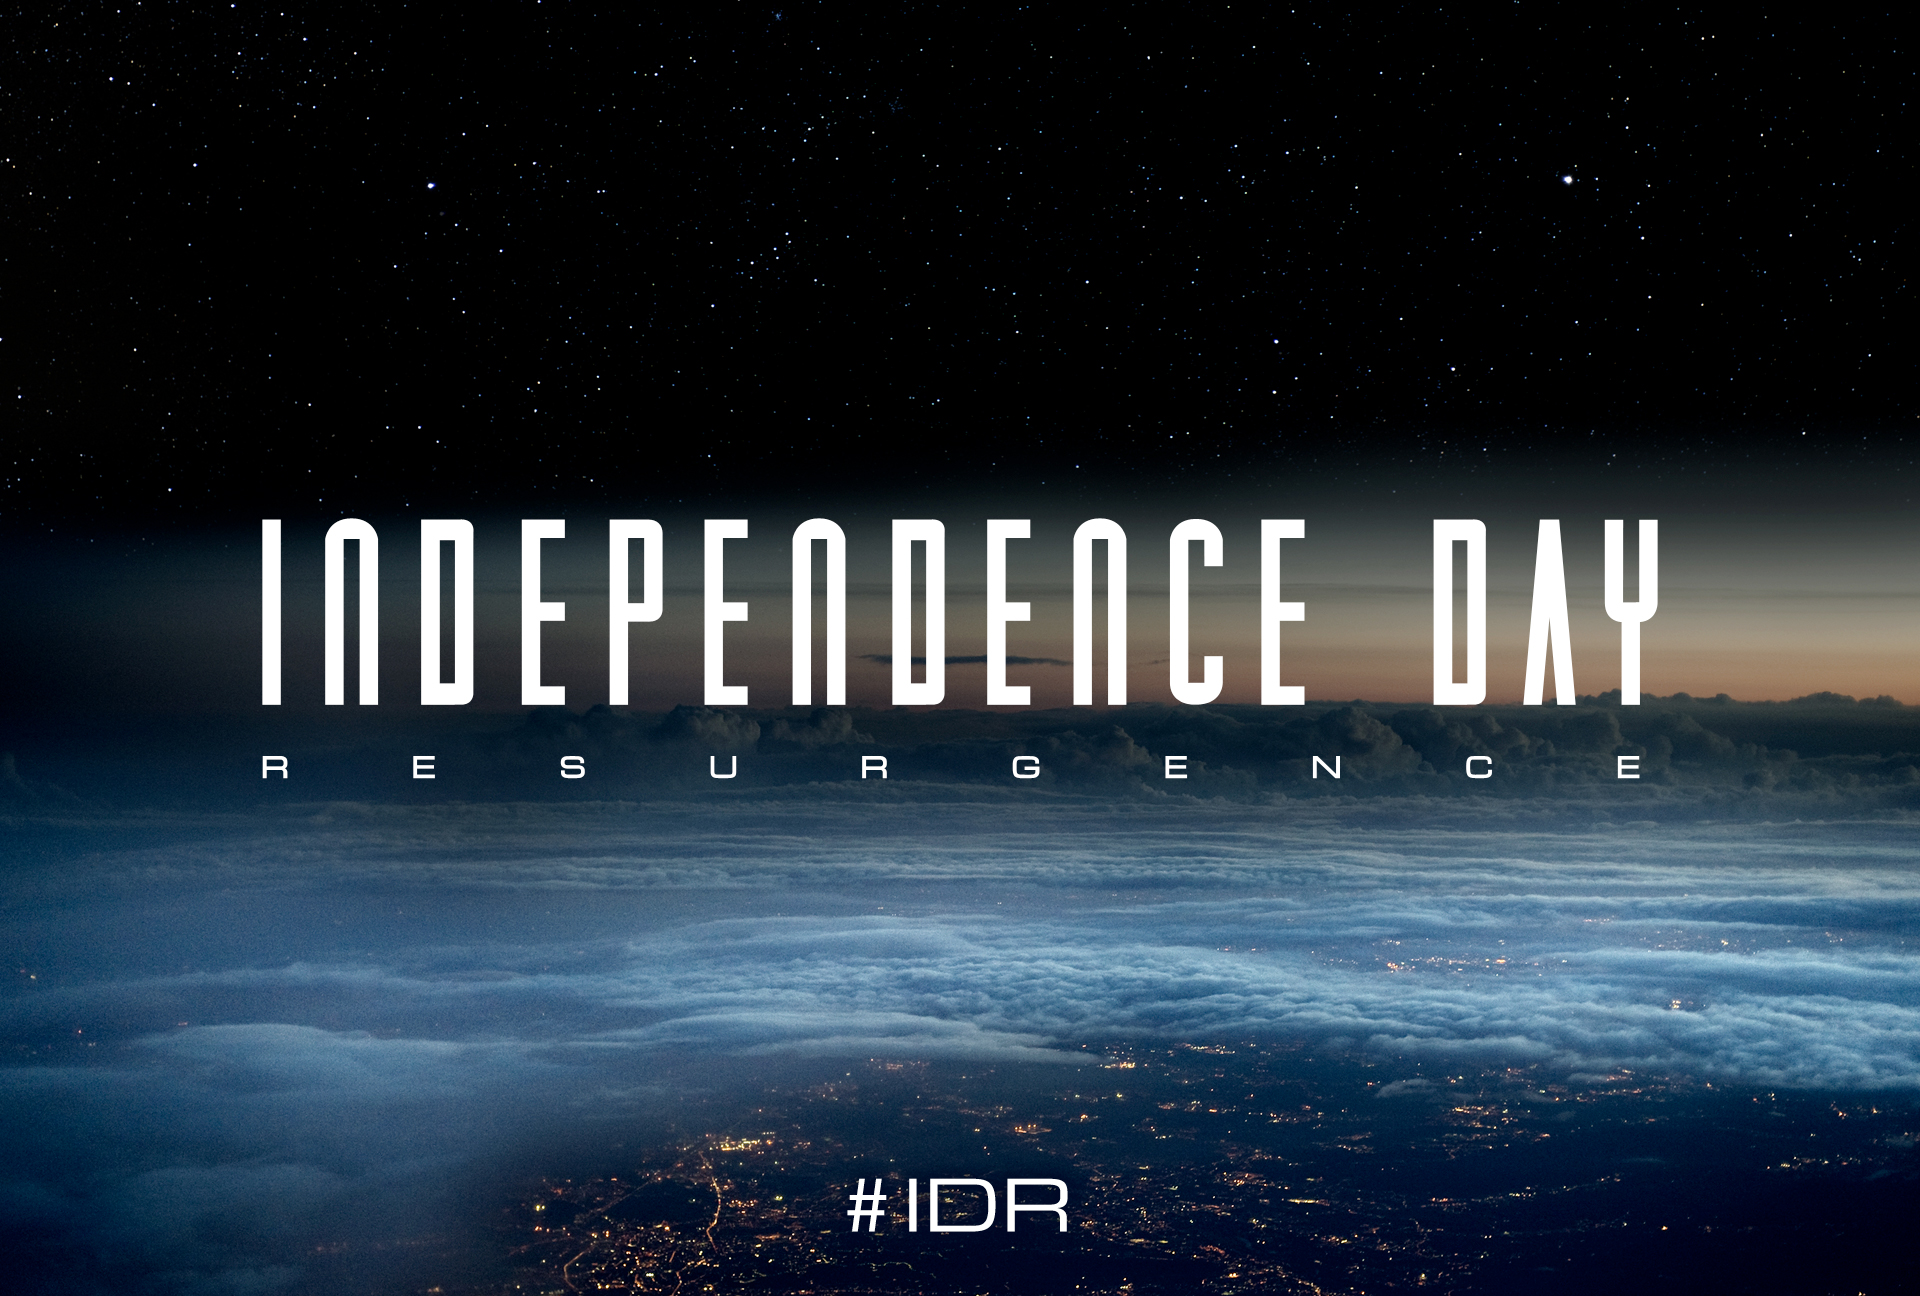 New Independence Day Resurgence Poster Warns Of Alien Threat